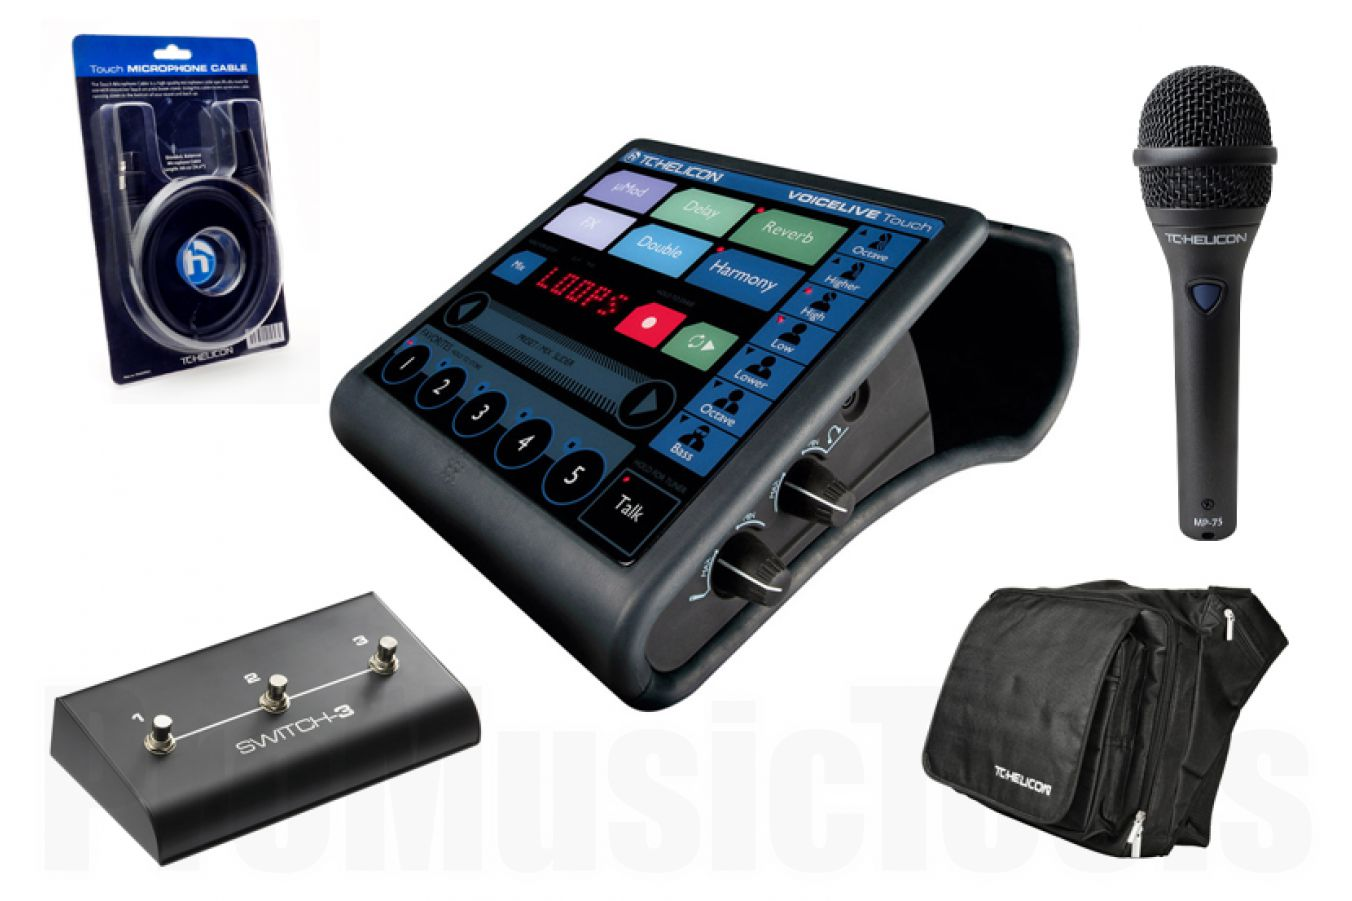 TC Helicon VoiceLive Touch Ultimate Gig Bundle incl. MP-75, Switch-3, mic cable, gigbag